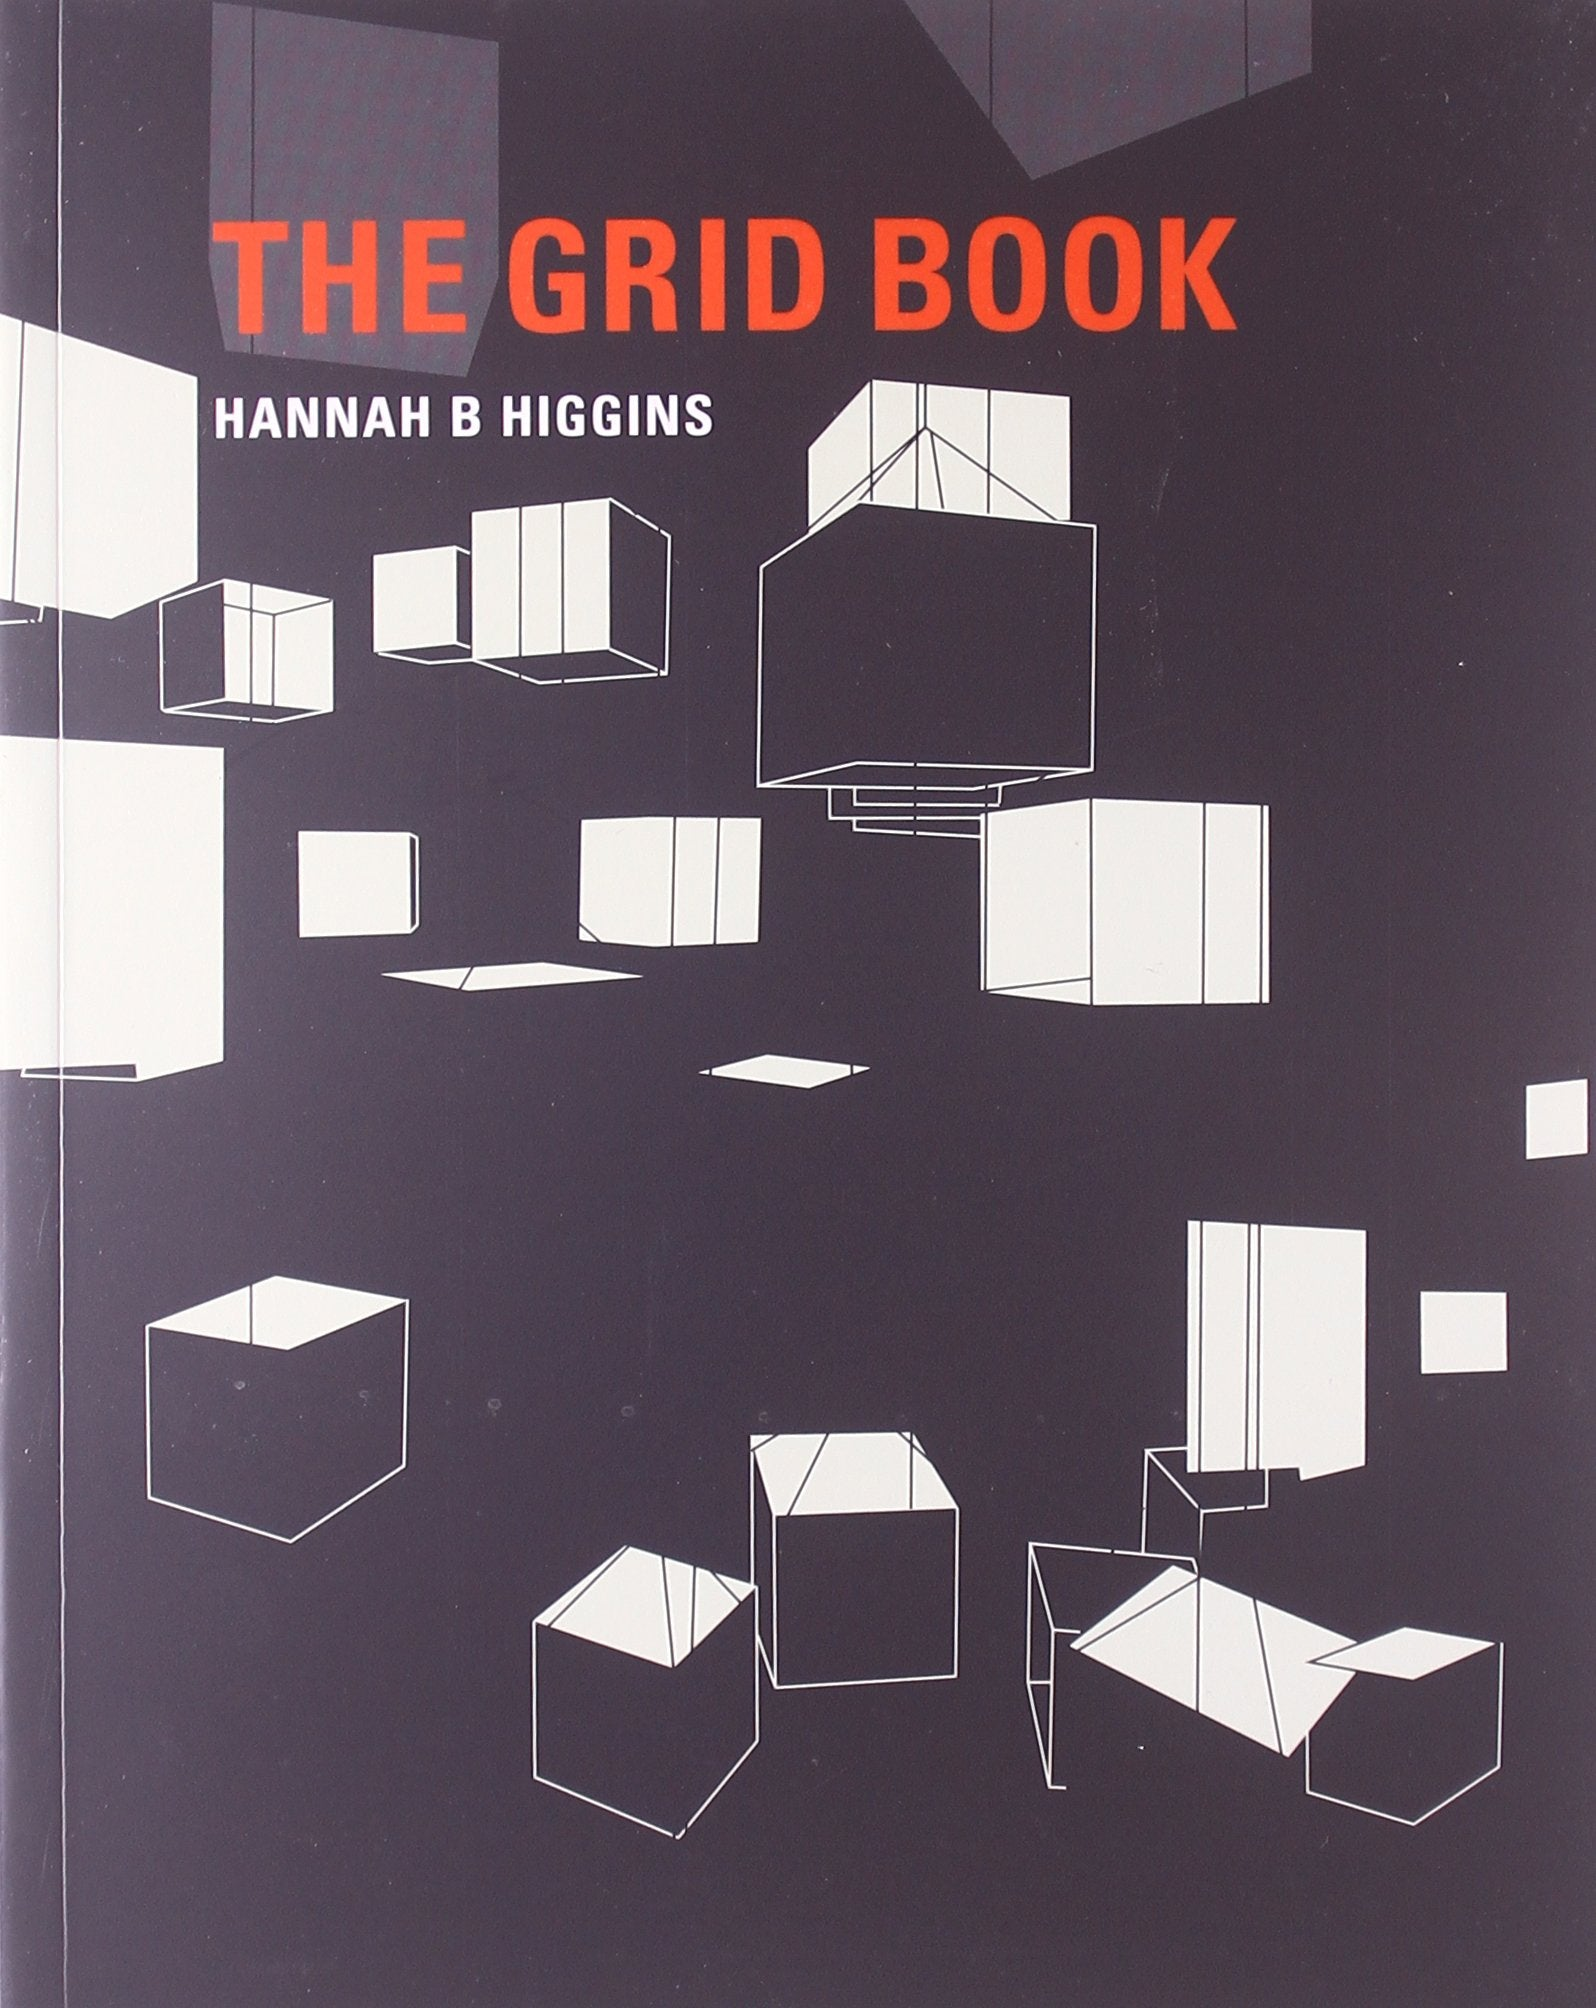 The Grid Book by Hannah B. Higgins - Book at Kavi Gupta Editions